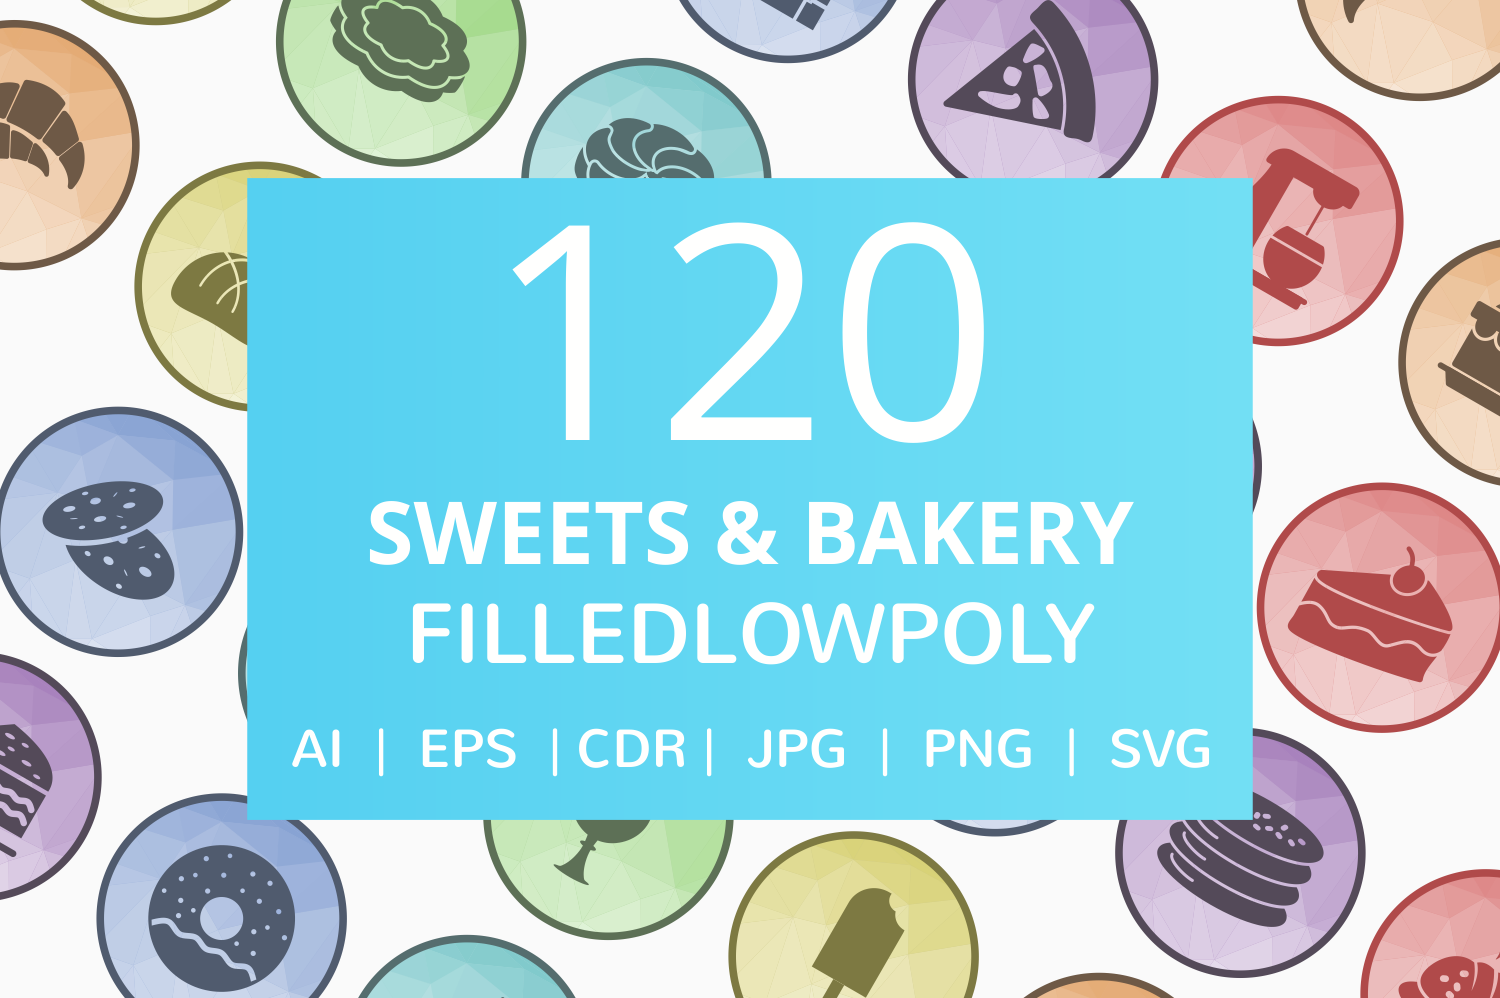 120 Sweets & Bakery Filled Low Poly Icons example image 1